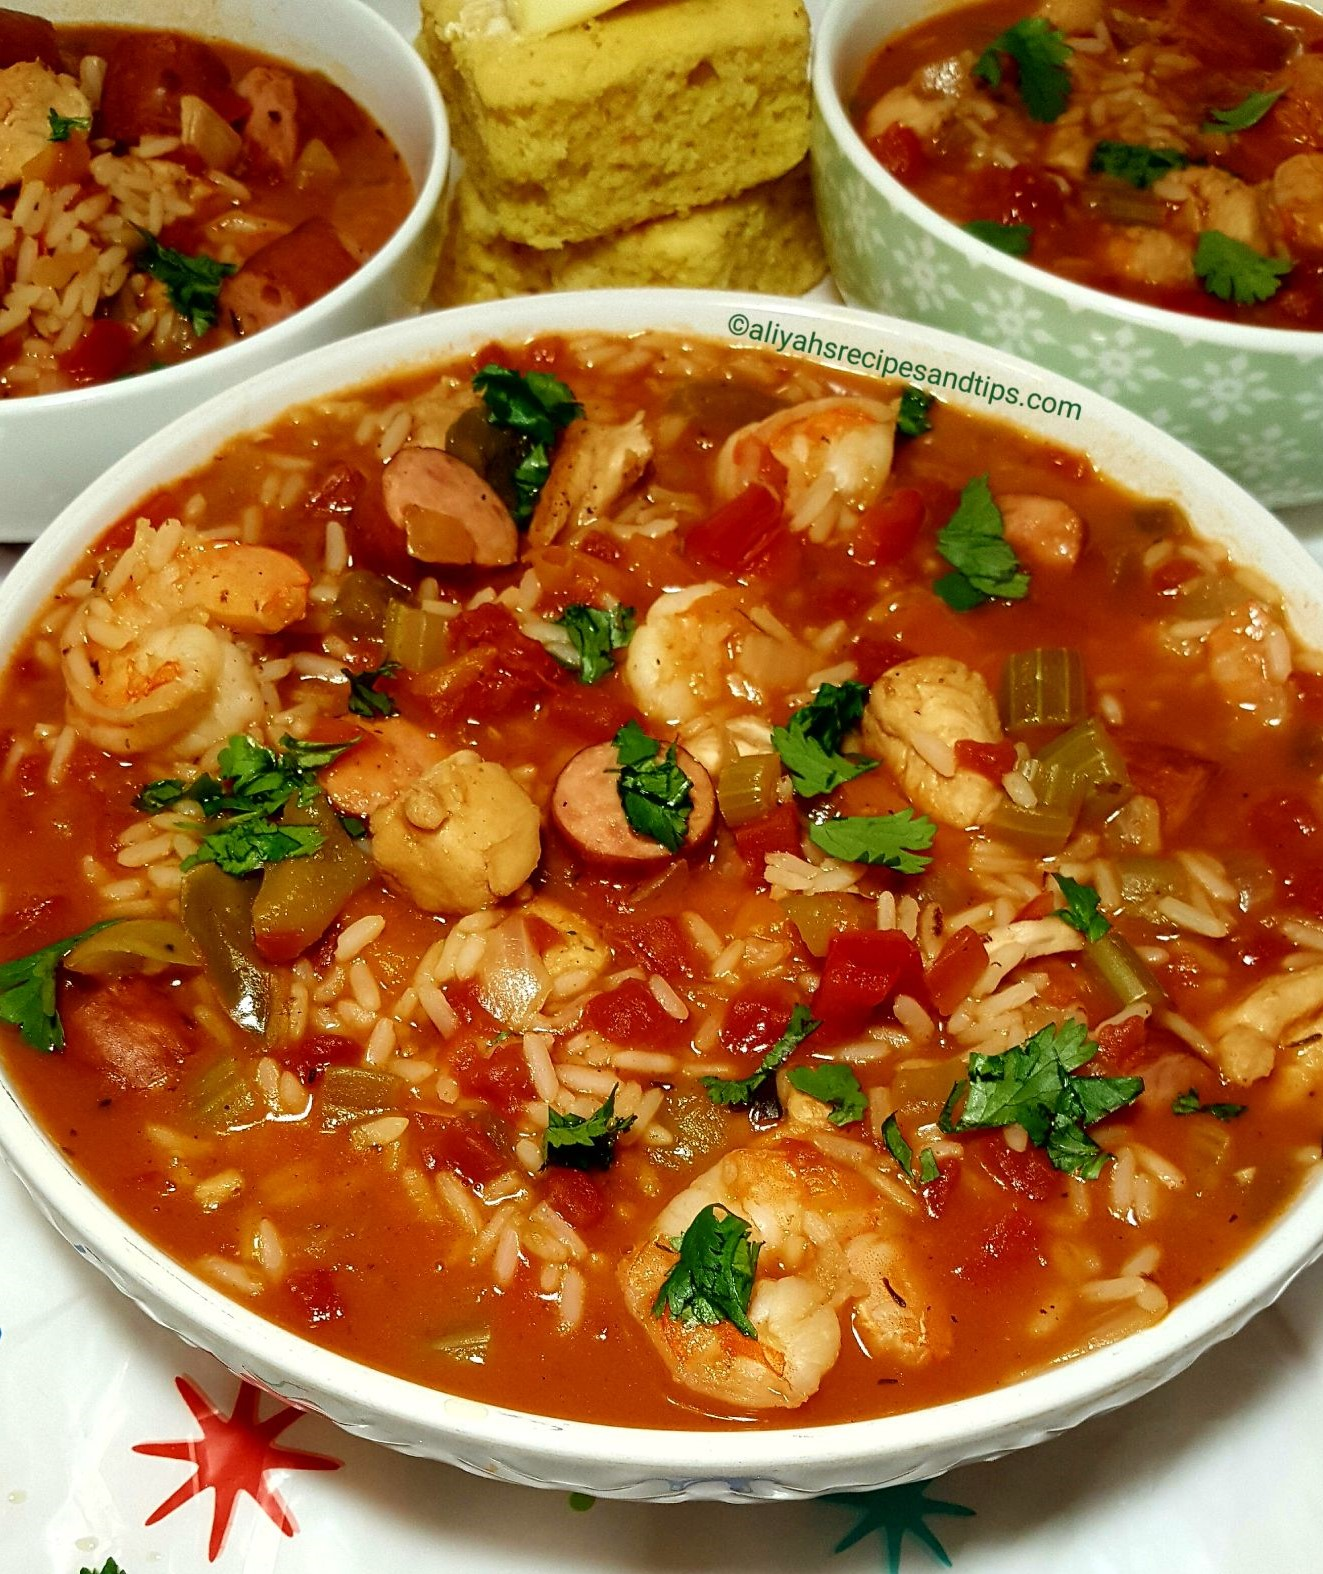 jambalaya soup, jambalaya soup recipe, andouille sausage, slow cooker, chicken sausage, cajun, recipe, spicy, easy, vegetarian, rice, crockpot jambalaya, quick, pumpkin, low carb, seafood, southern, turkey, slow cooker jambalaya